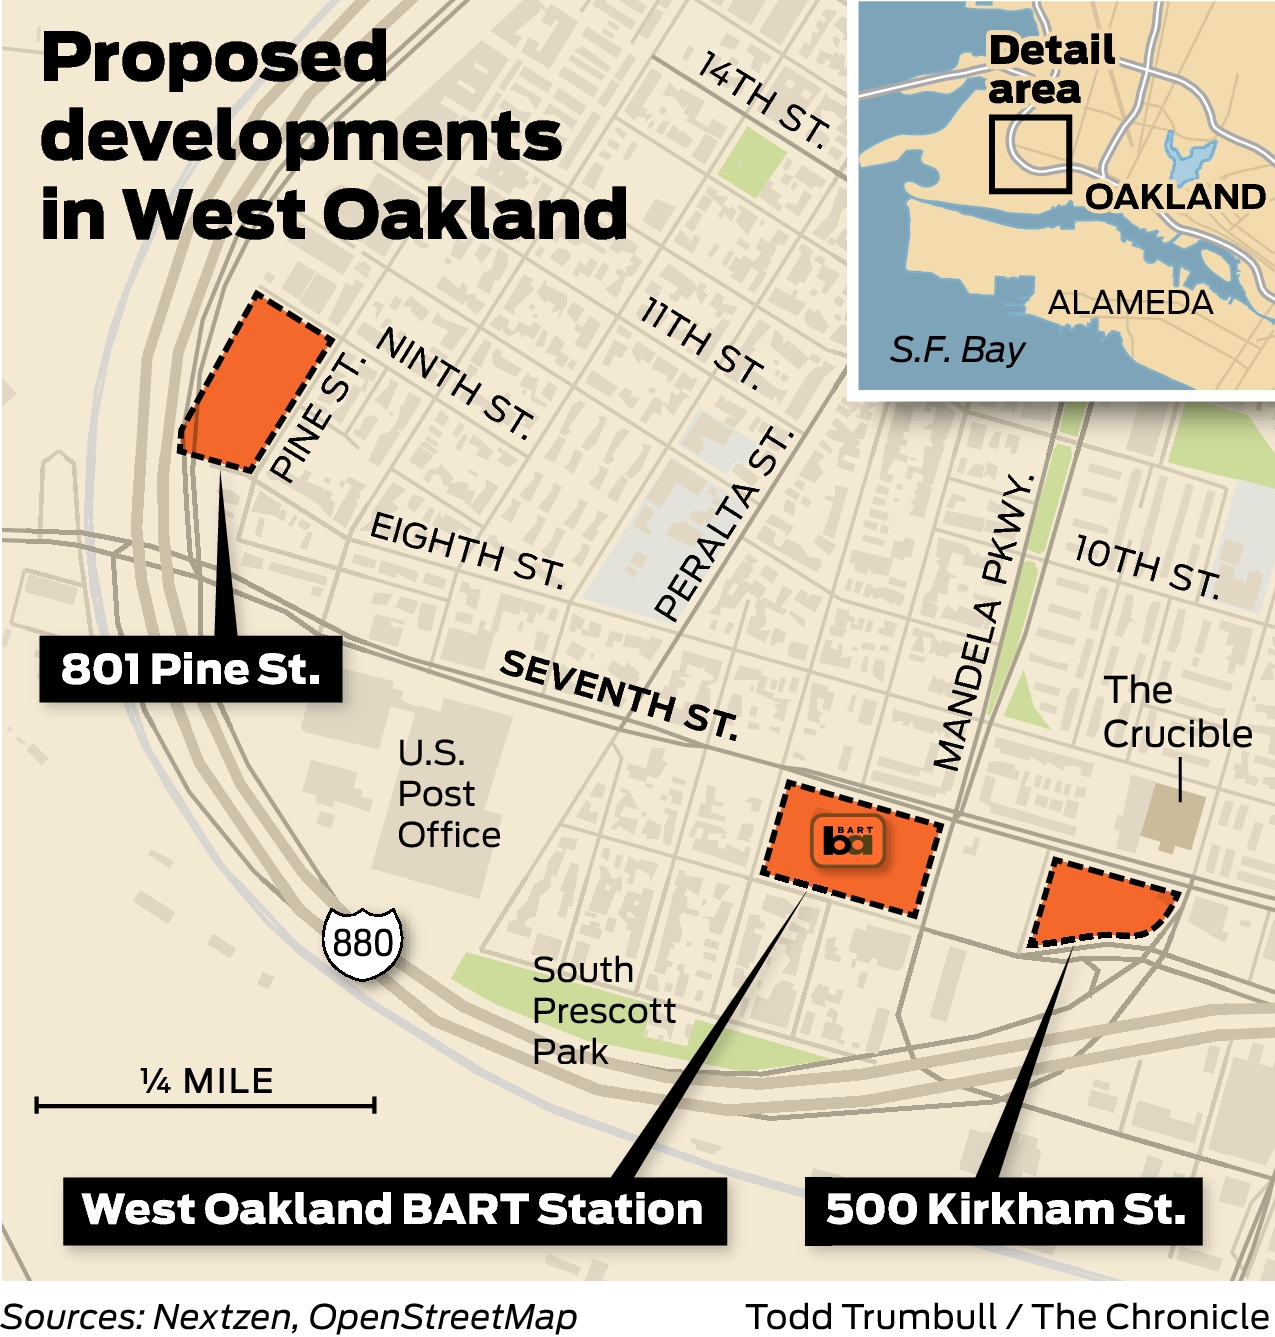 West Oakland apartment project with 1,000 units receives planning permit